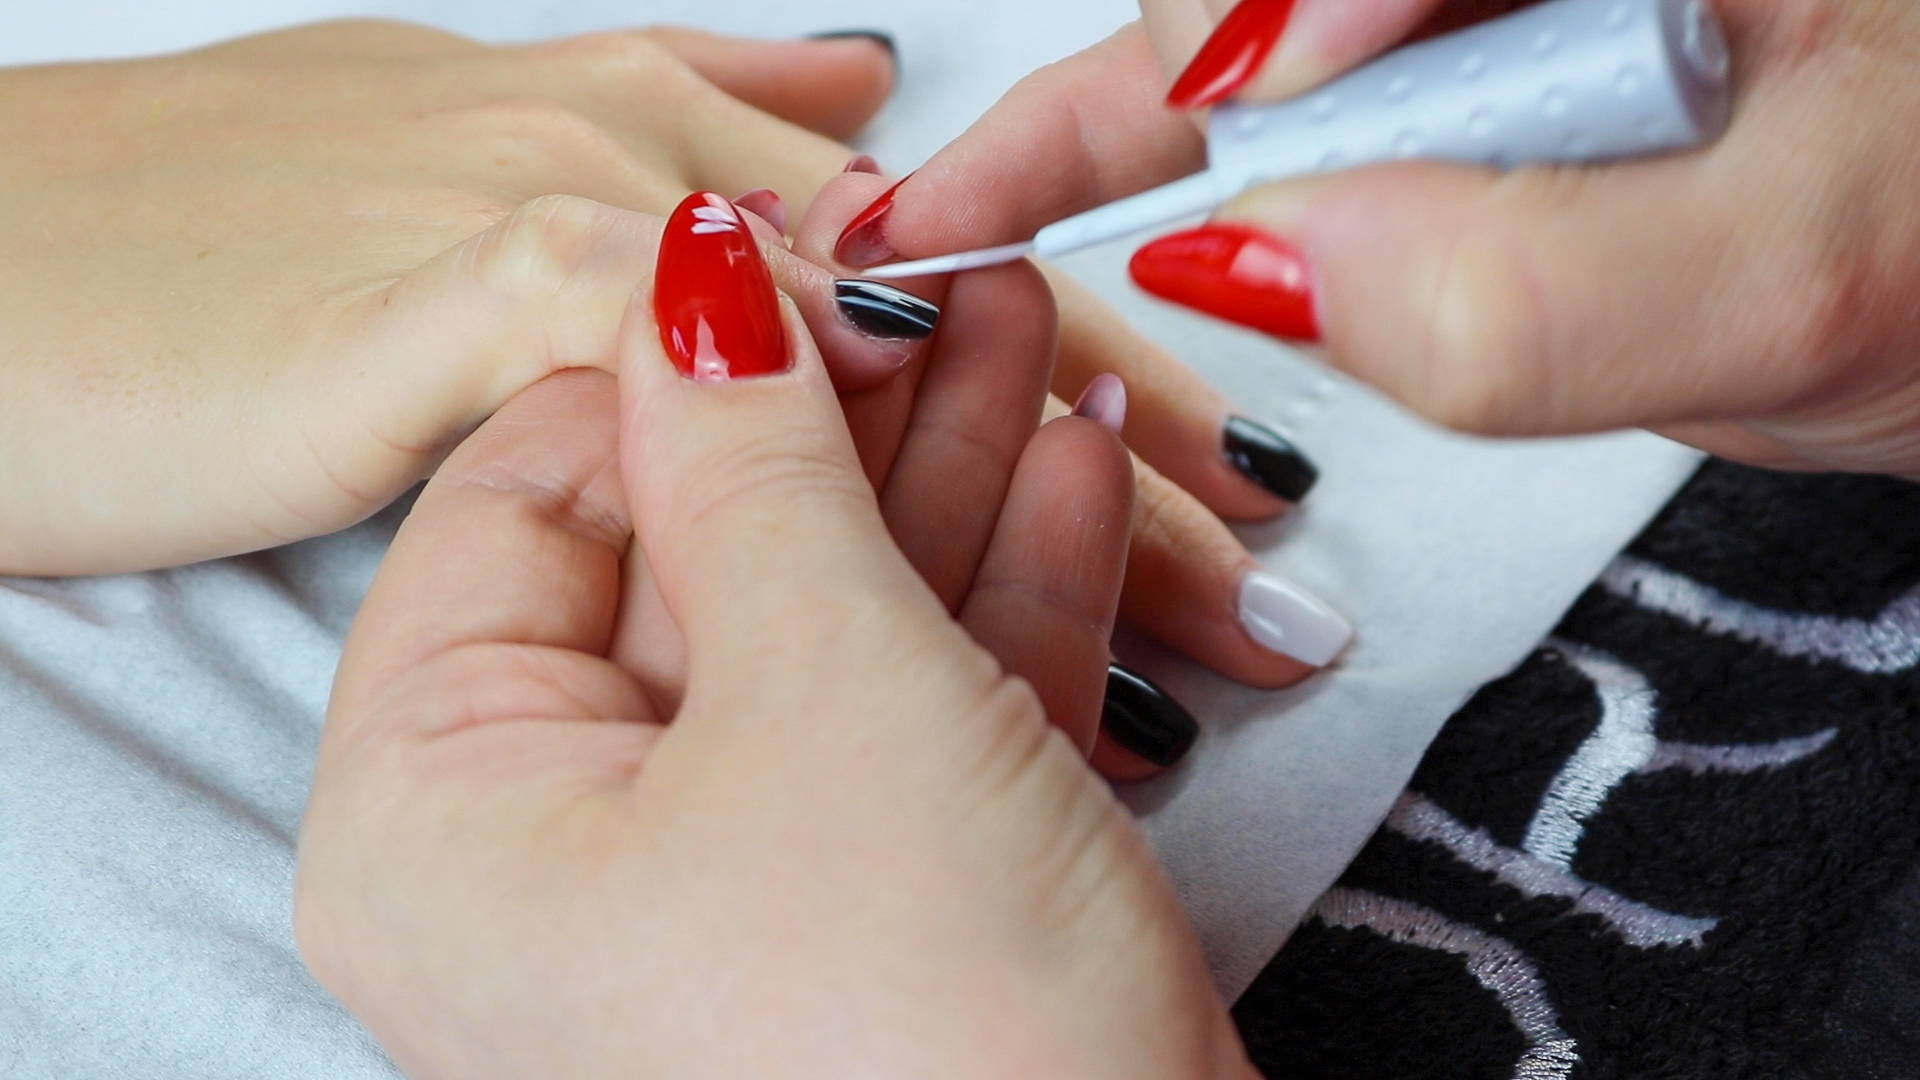 White stripes being painted onto black nails using ORLY White Tips to create Jack Skellington nails